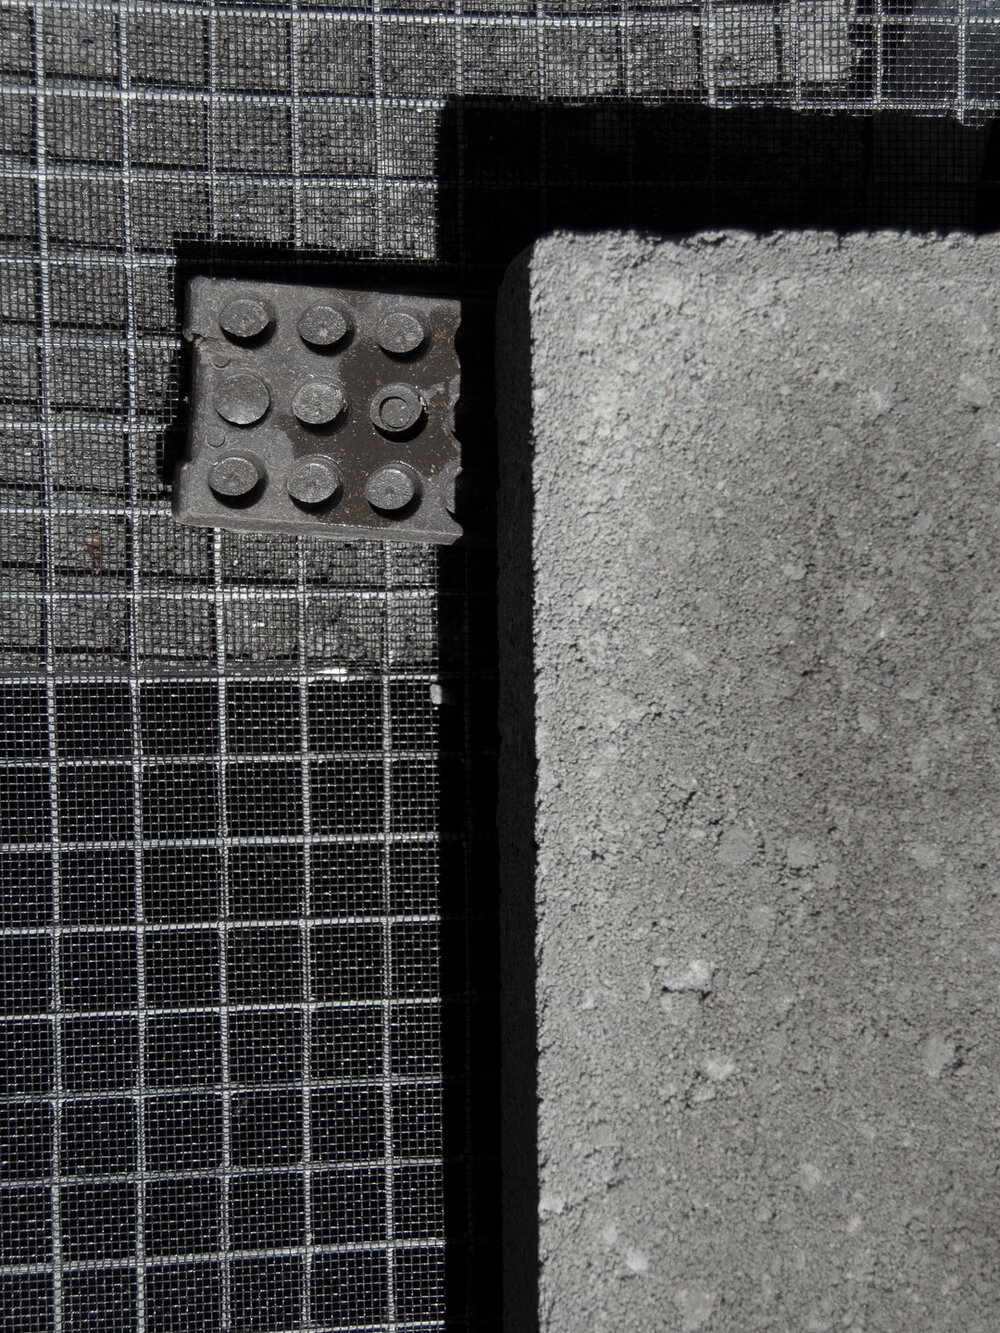 Shims under a paver for a DIY bubbling fountain.jpg